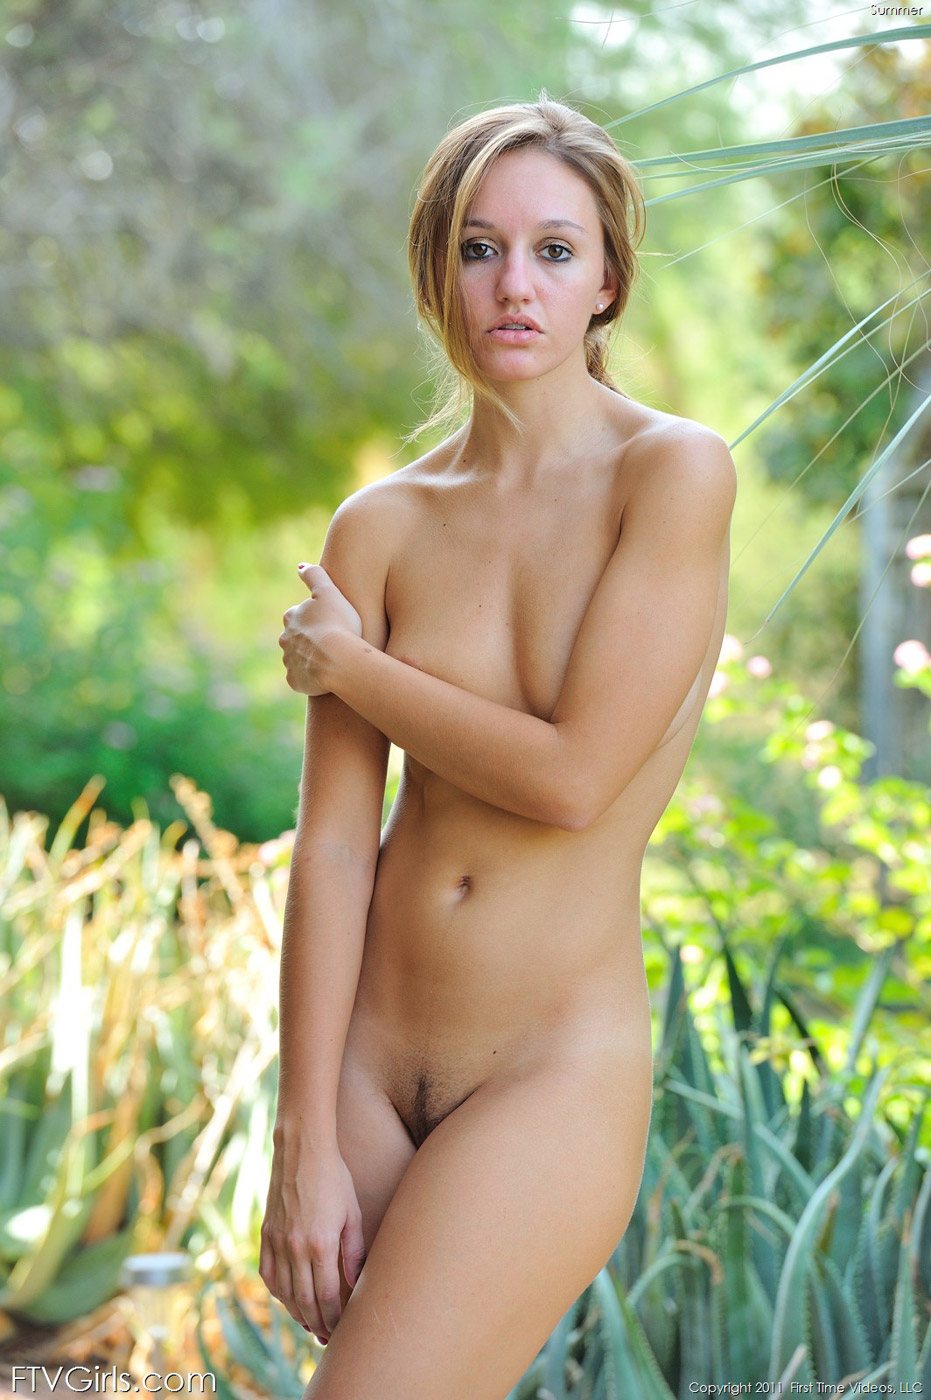 Naked girls outside pictures